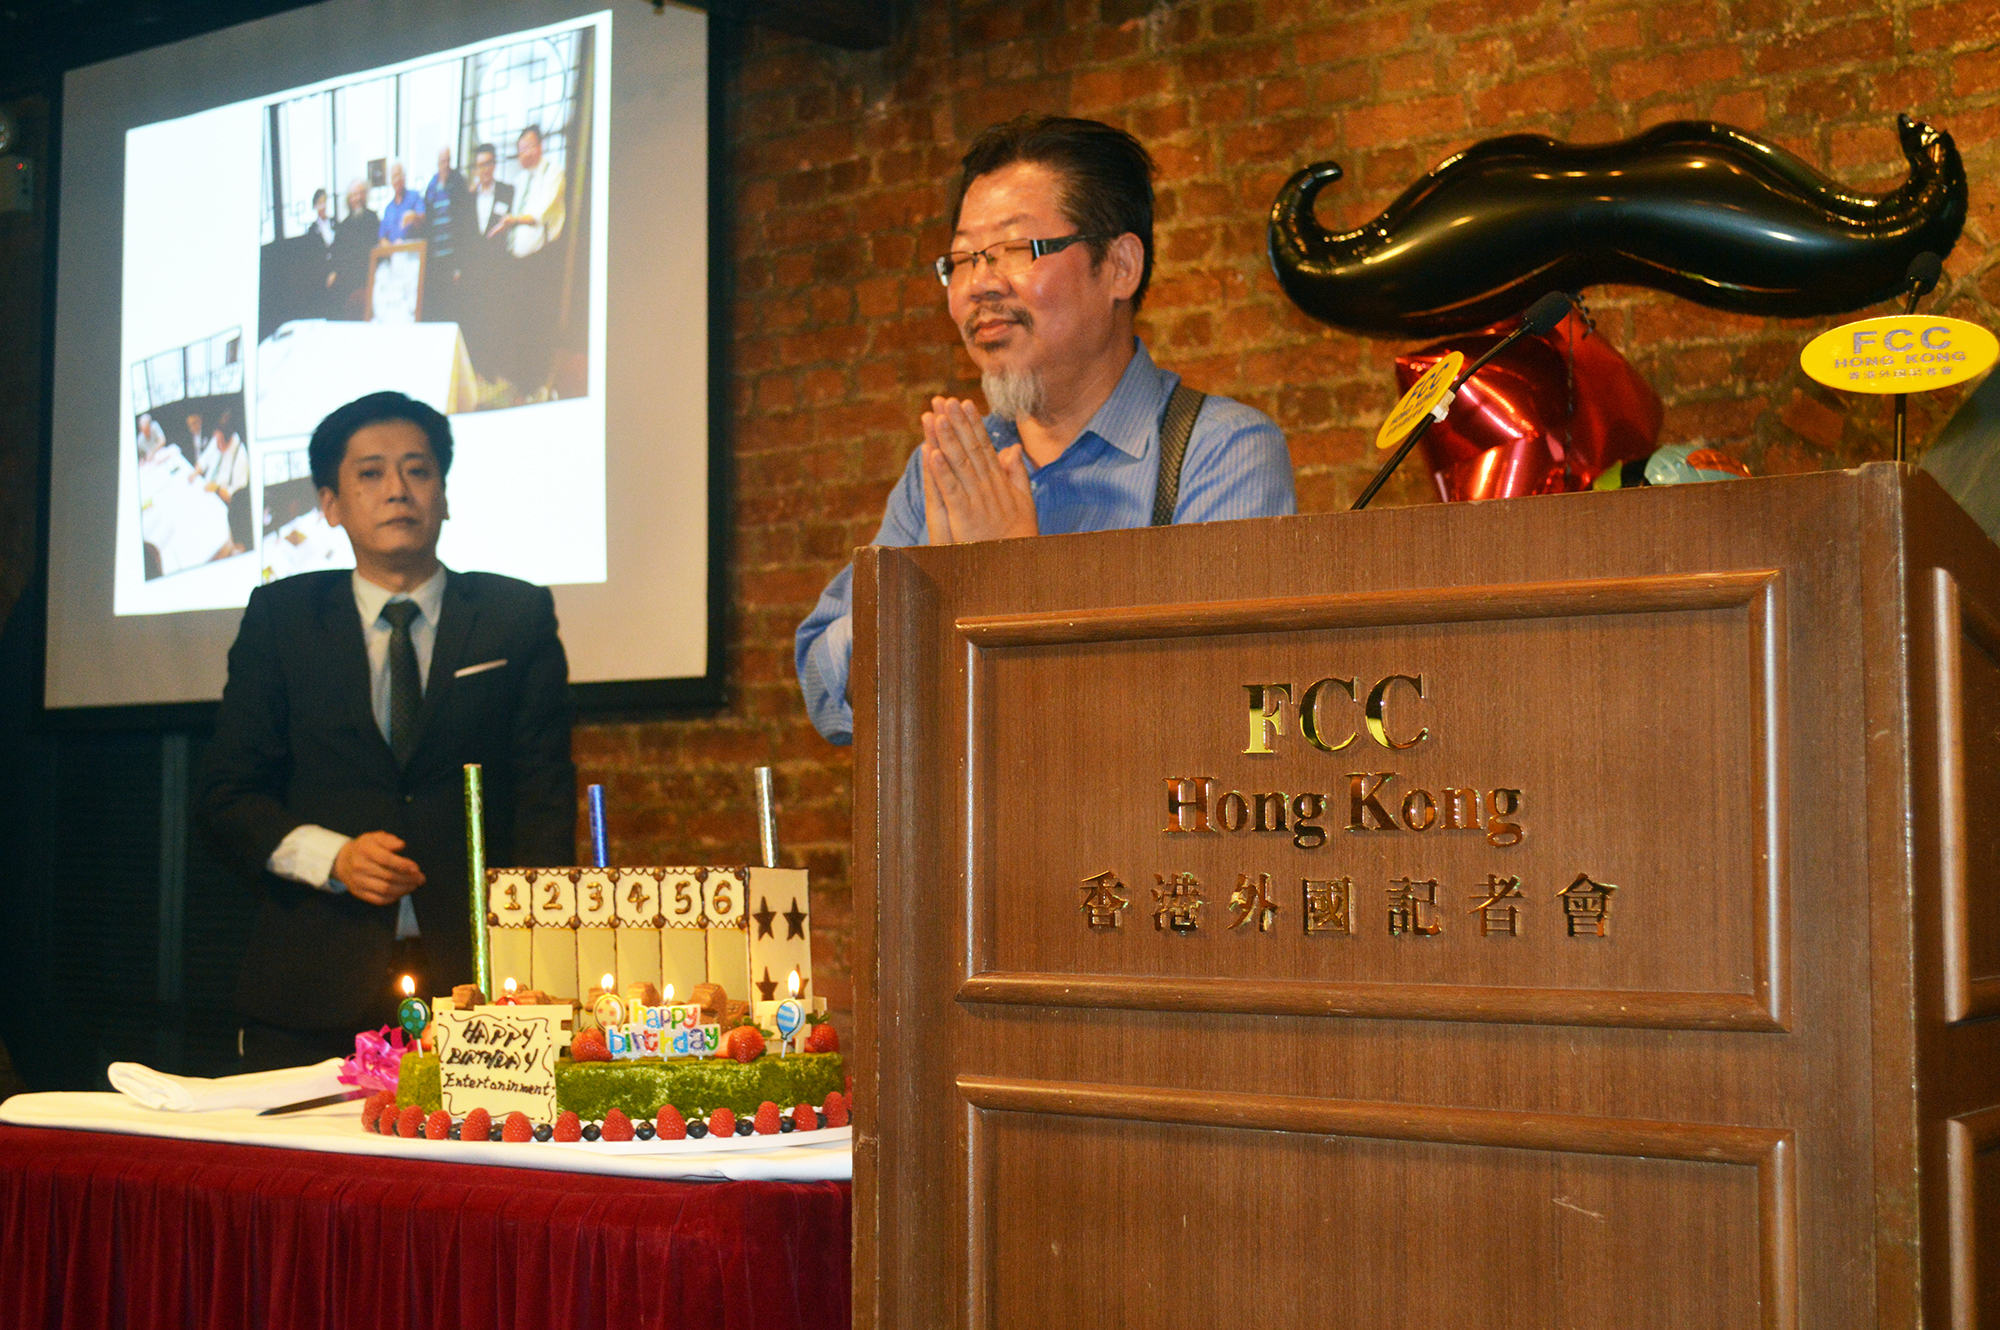 Gilbert Cheng with his birthday cake. Photo: Sarah Graham/FCC